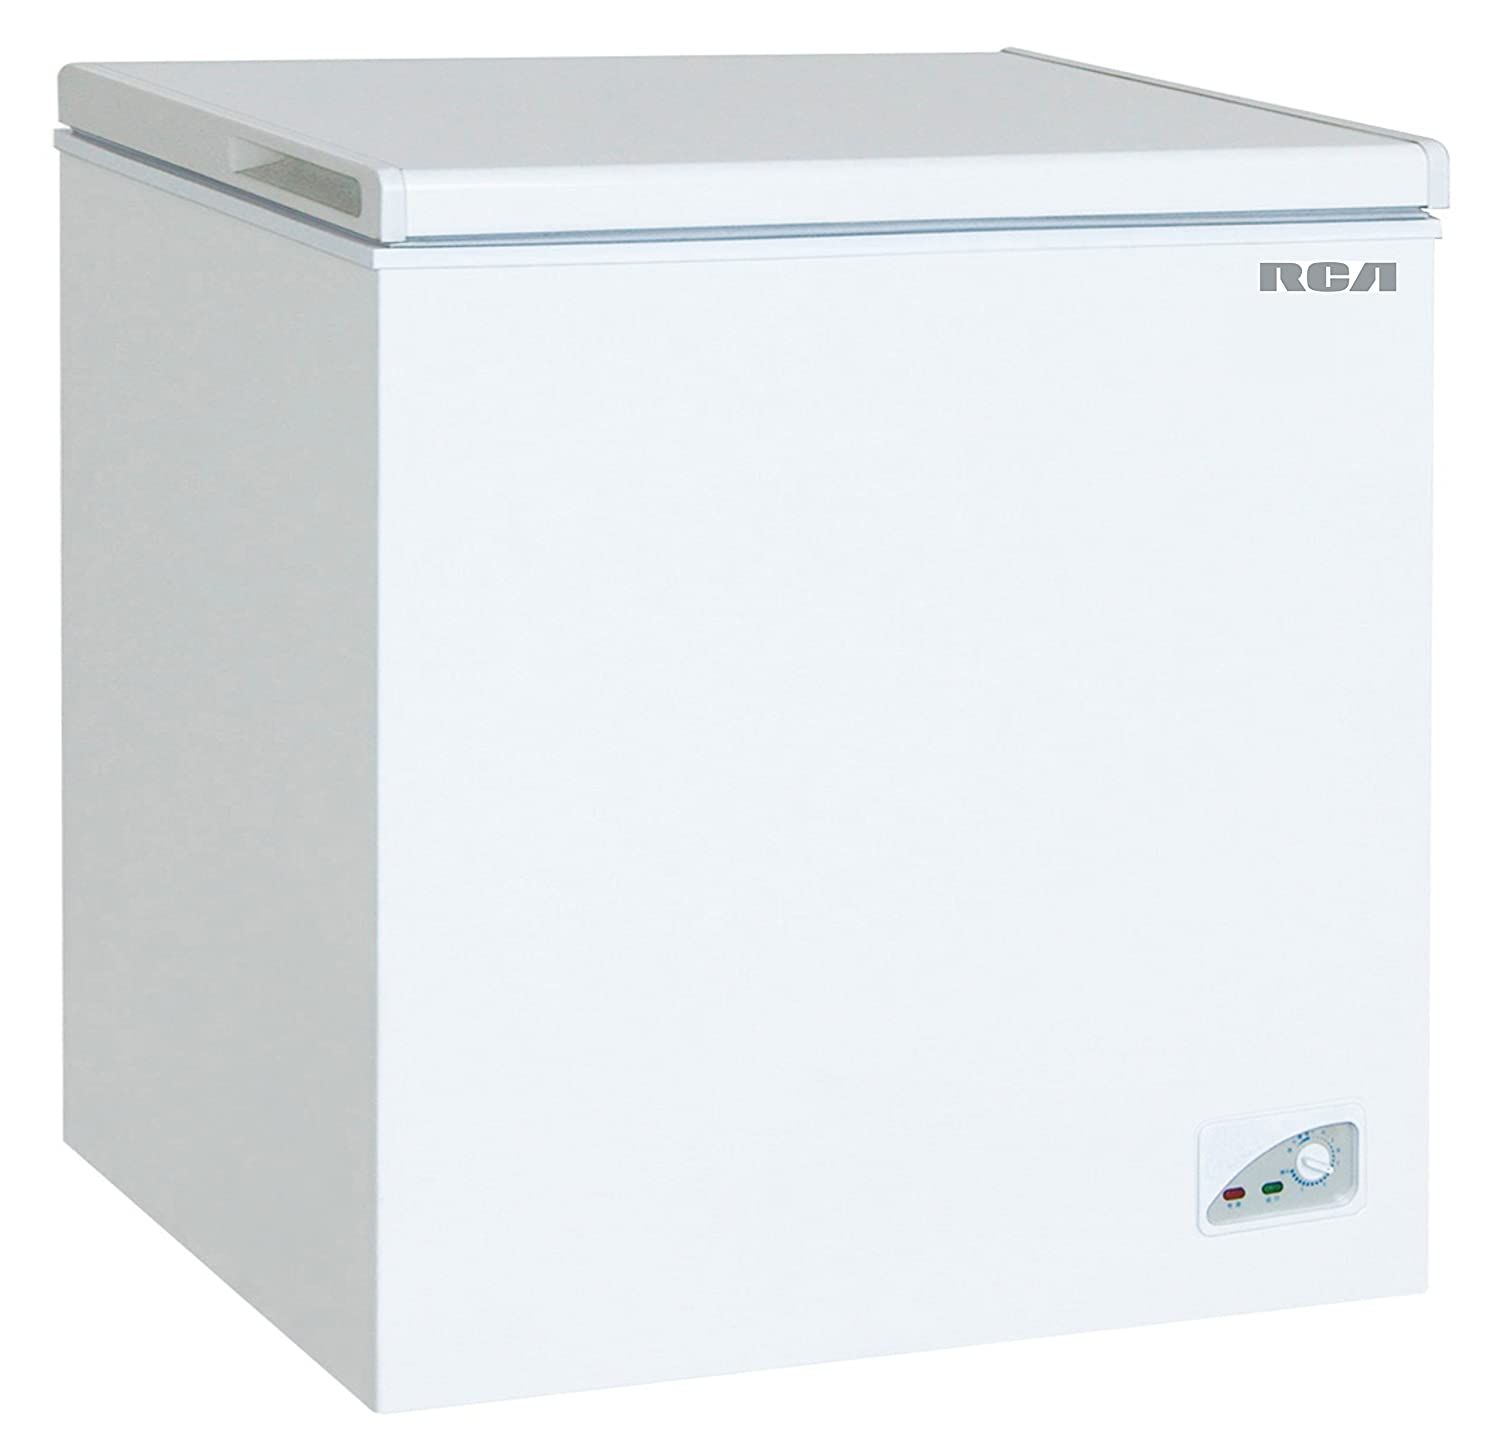 RCA-IGLOO 7.1 Cubic Foot Chest Freezer